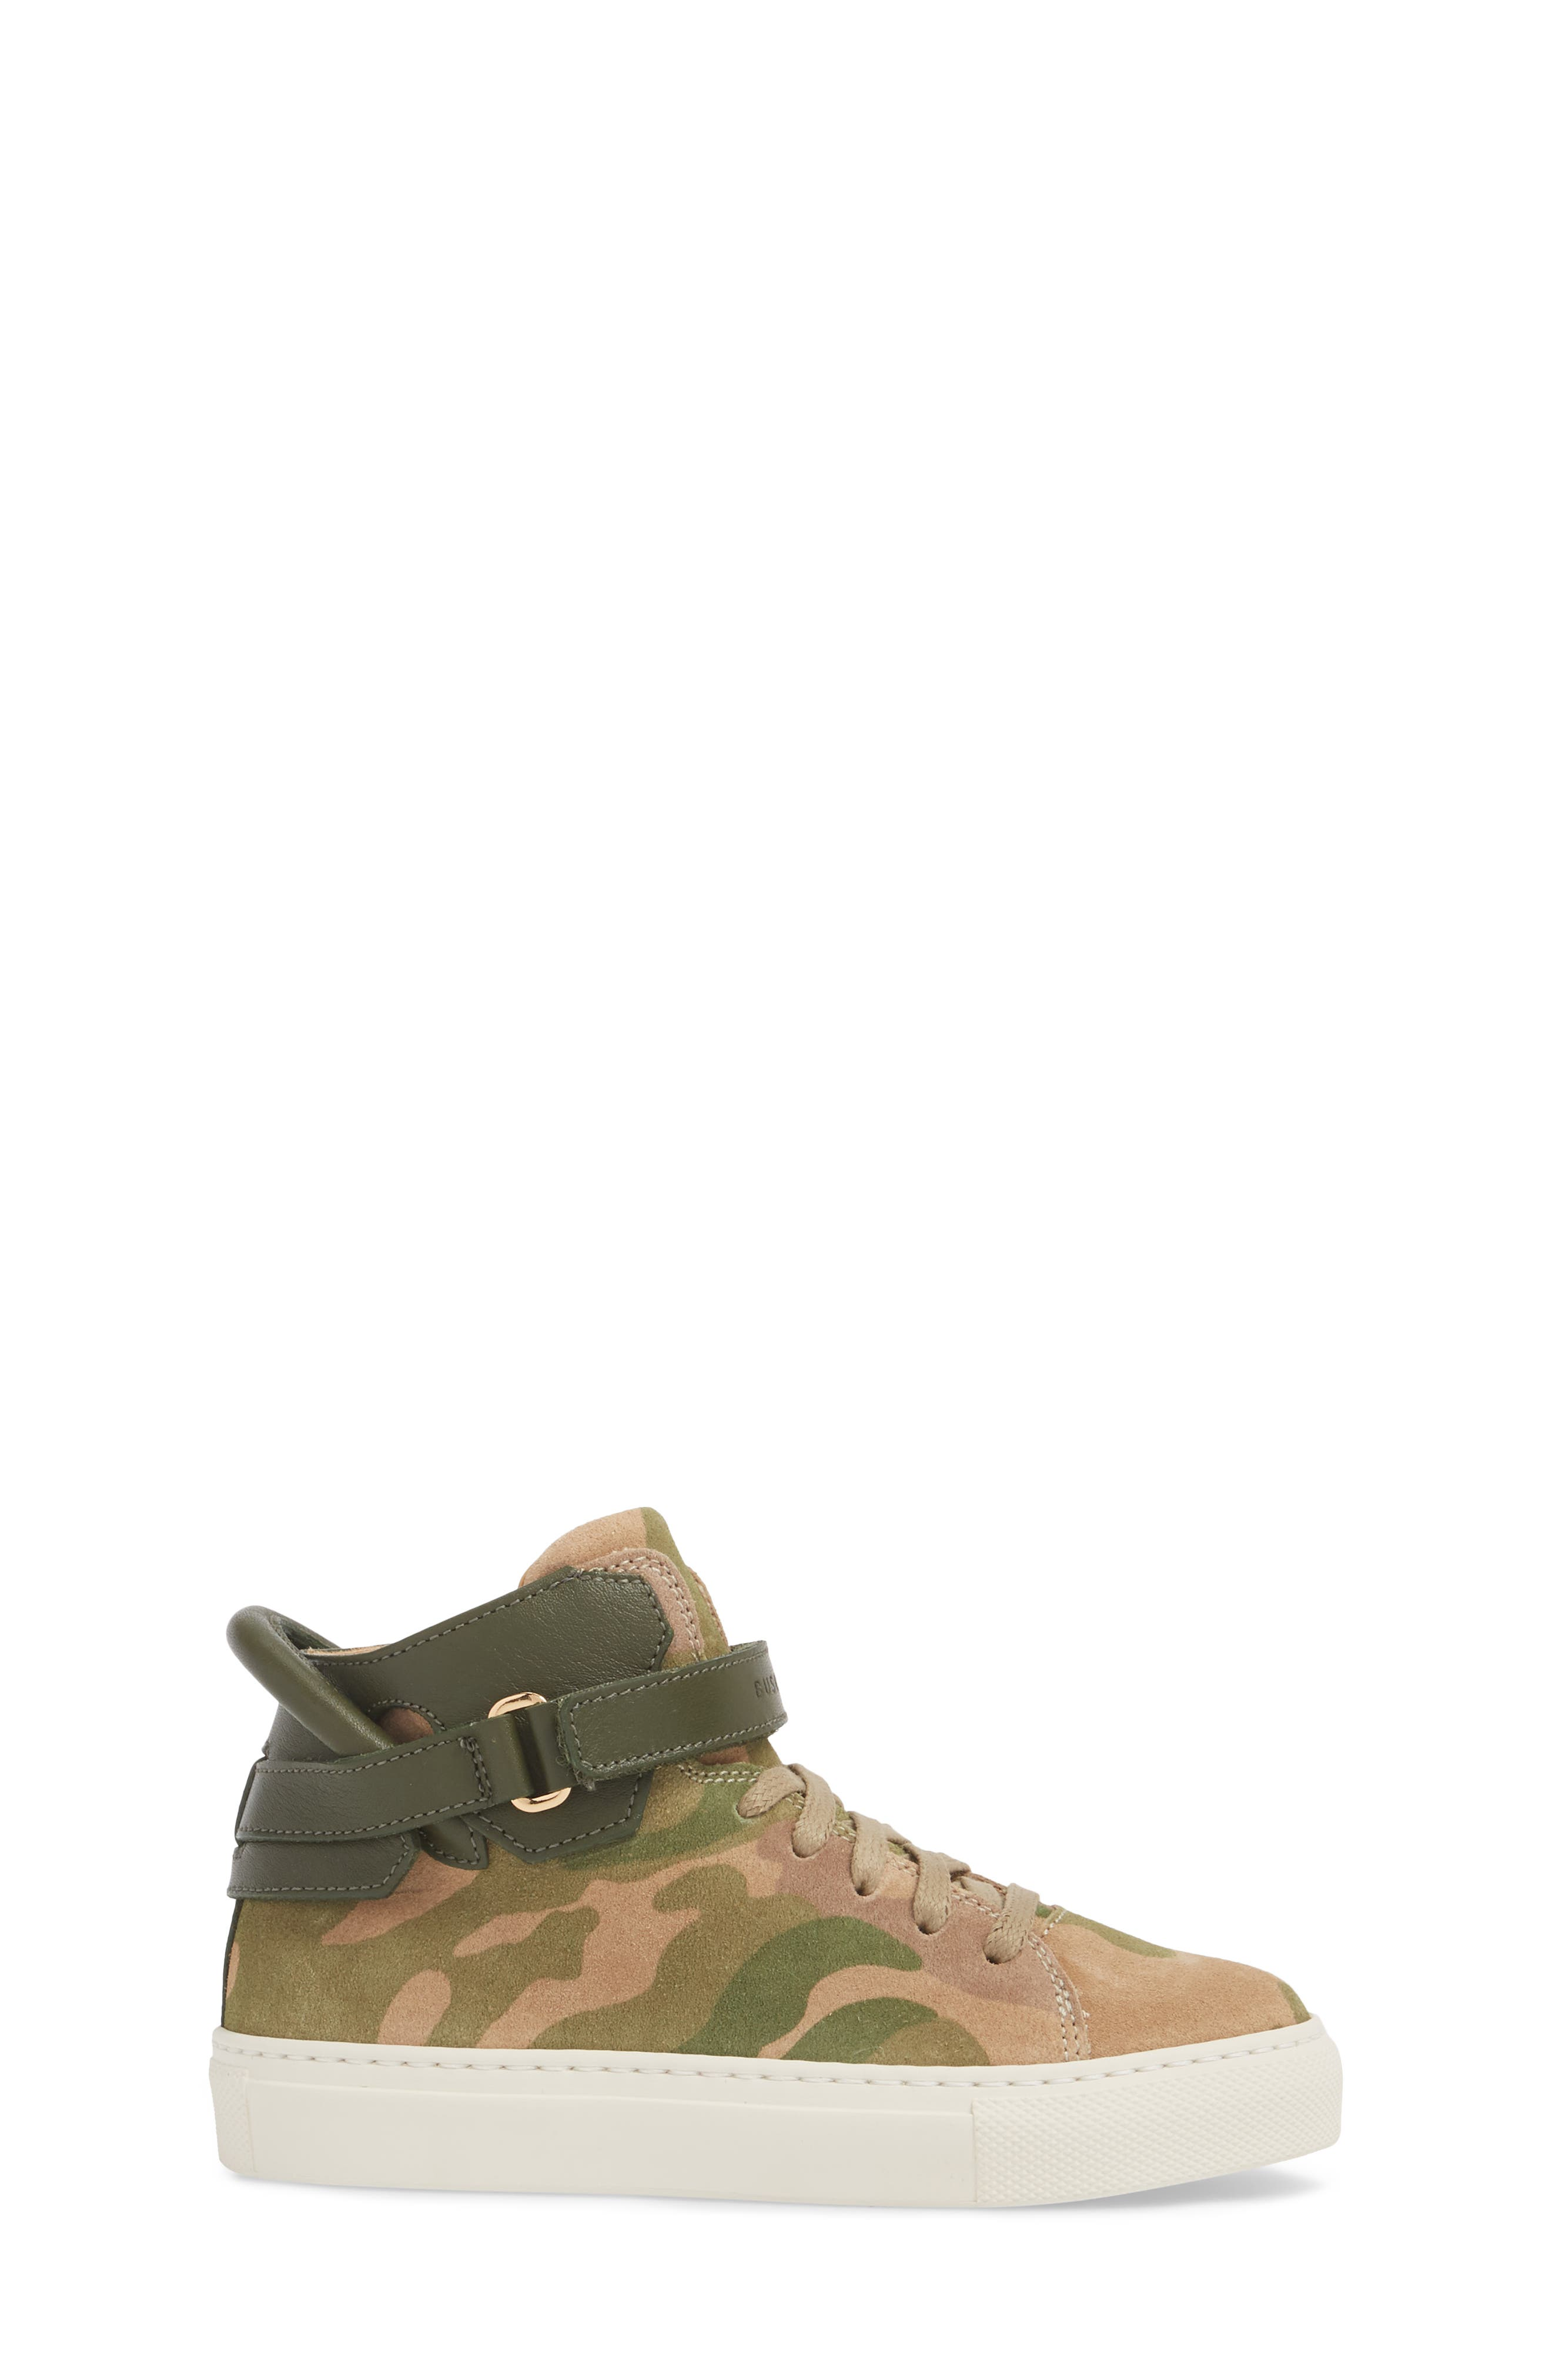 Suede High Top Sneaker,                             Alternate thumbnail 3, color,                             CAMO SUEDE